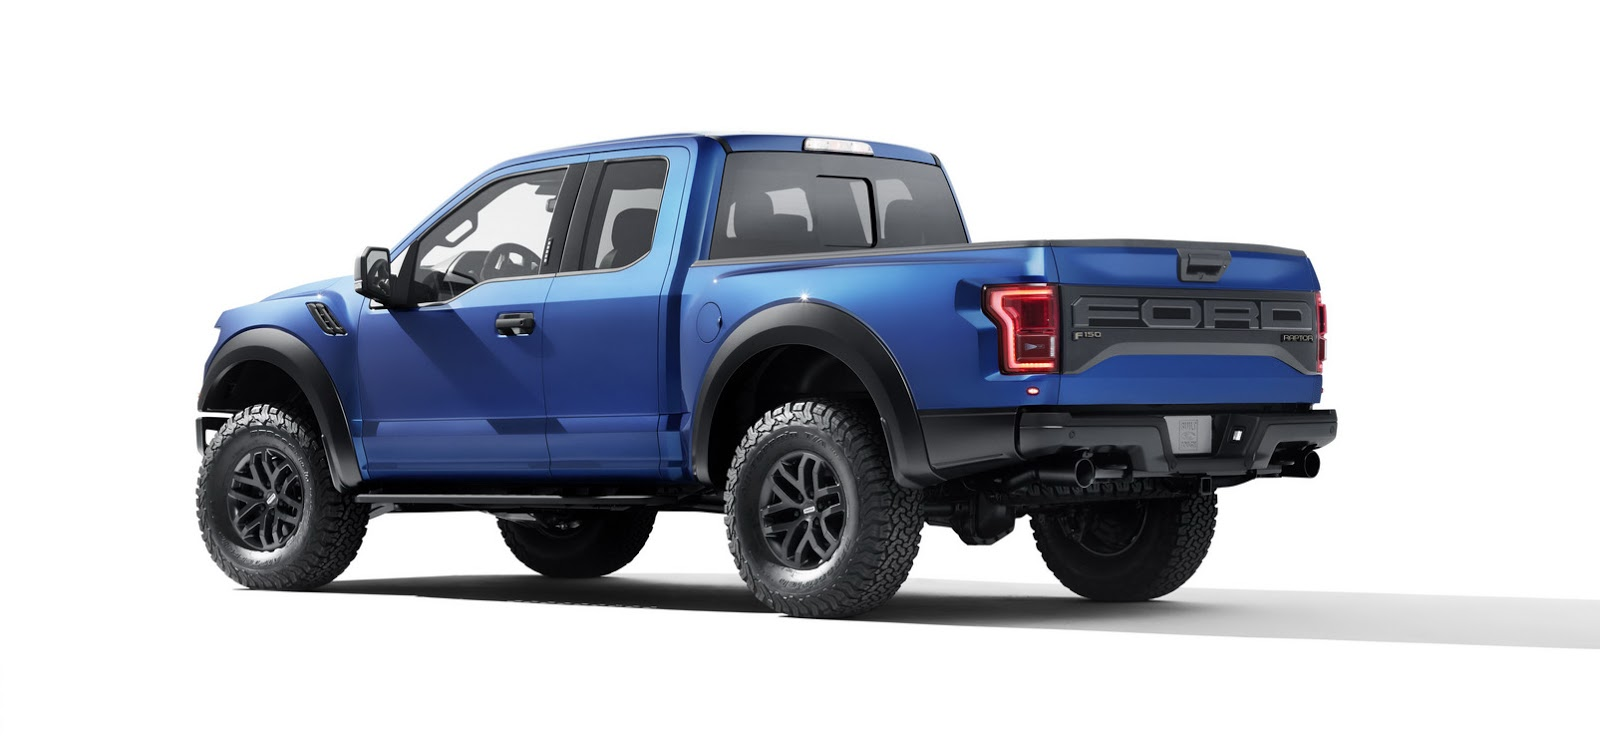 New 2020 Ford F-150 Raptor is a Badass Performance Truck